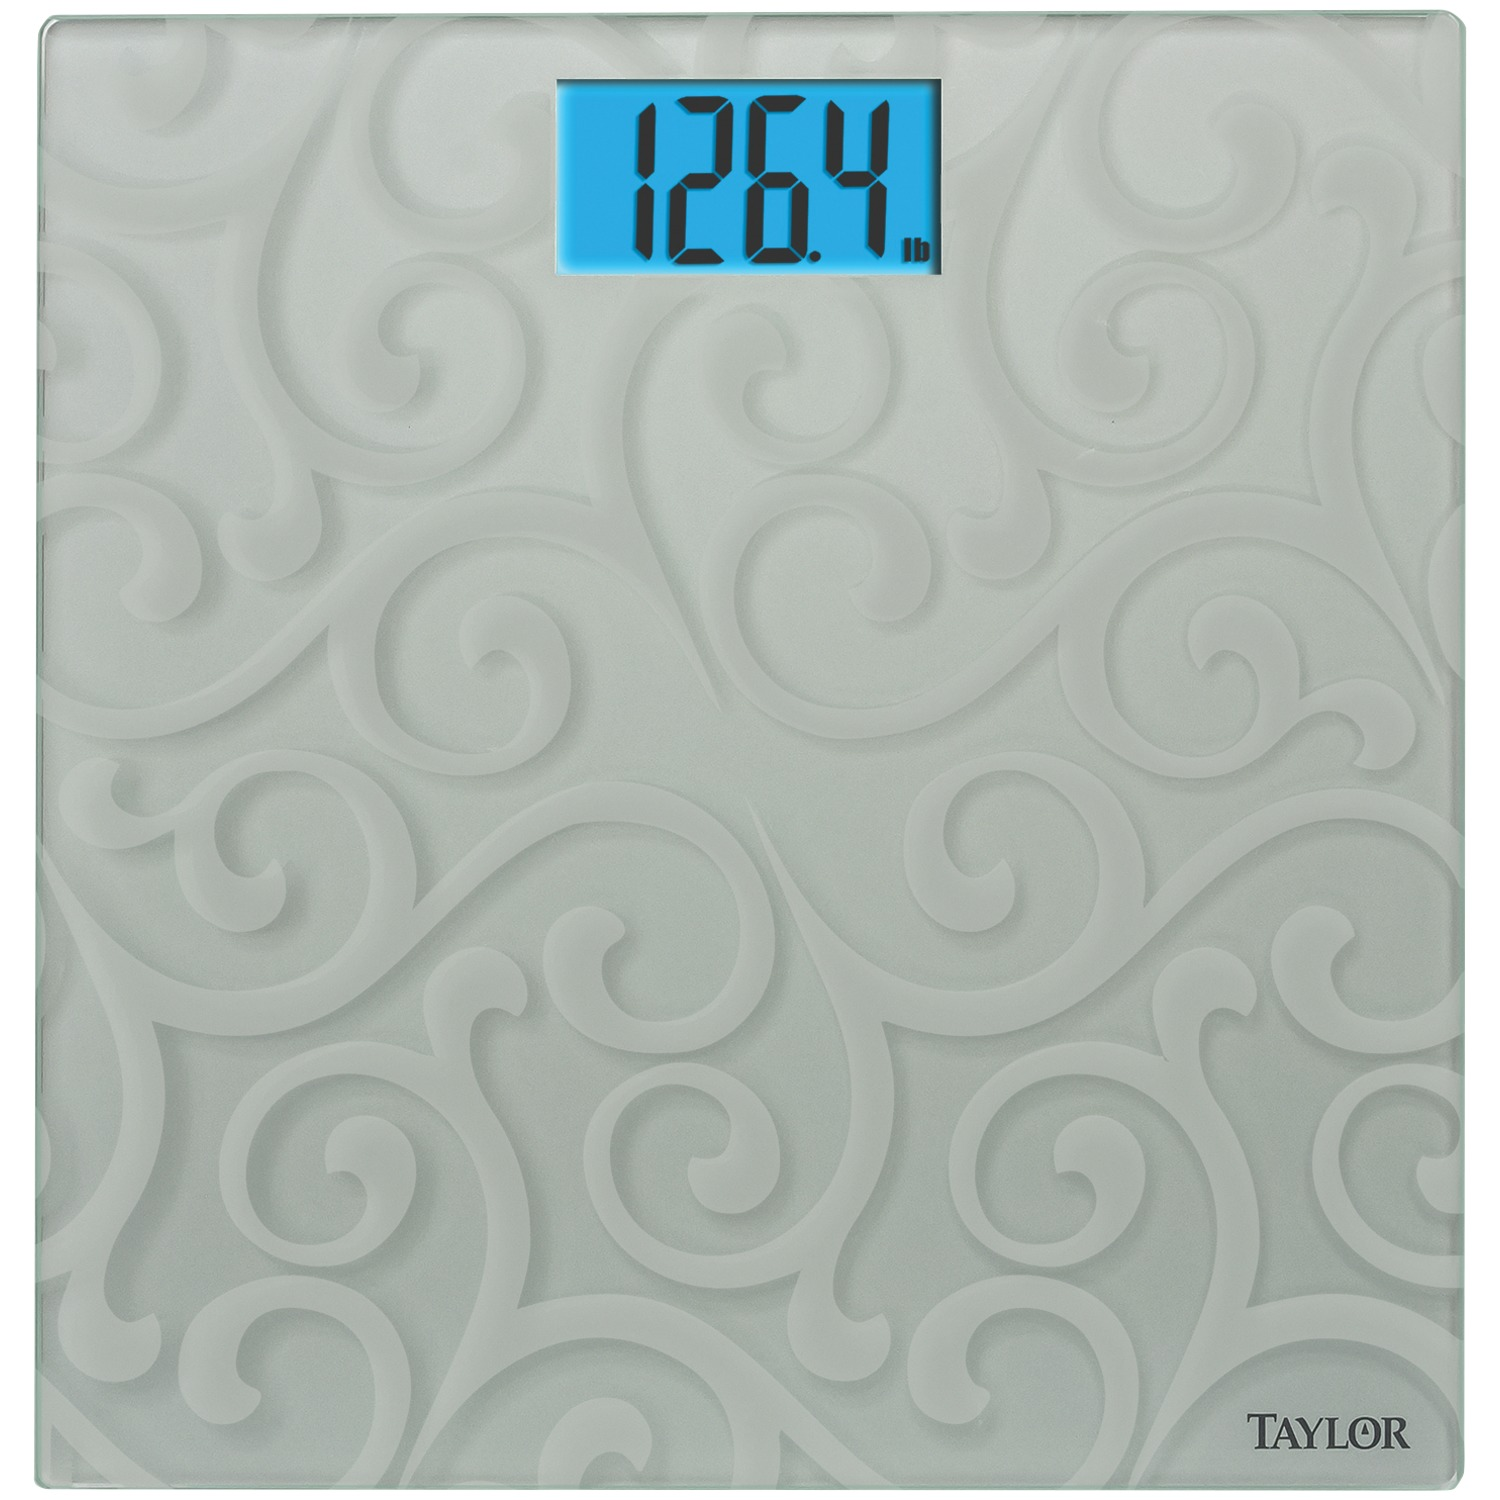 Taylor Precision Products 75984192FT 440lb-Capacity Digital Scale